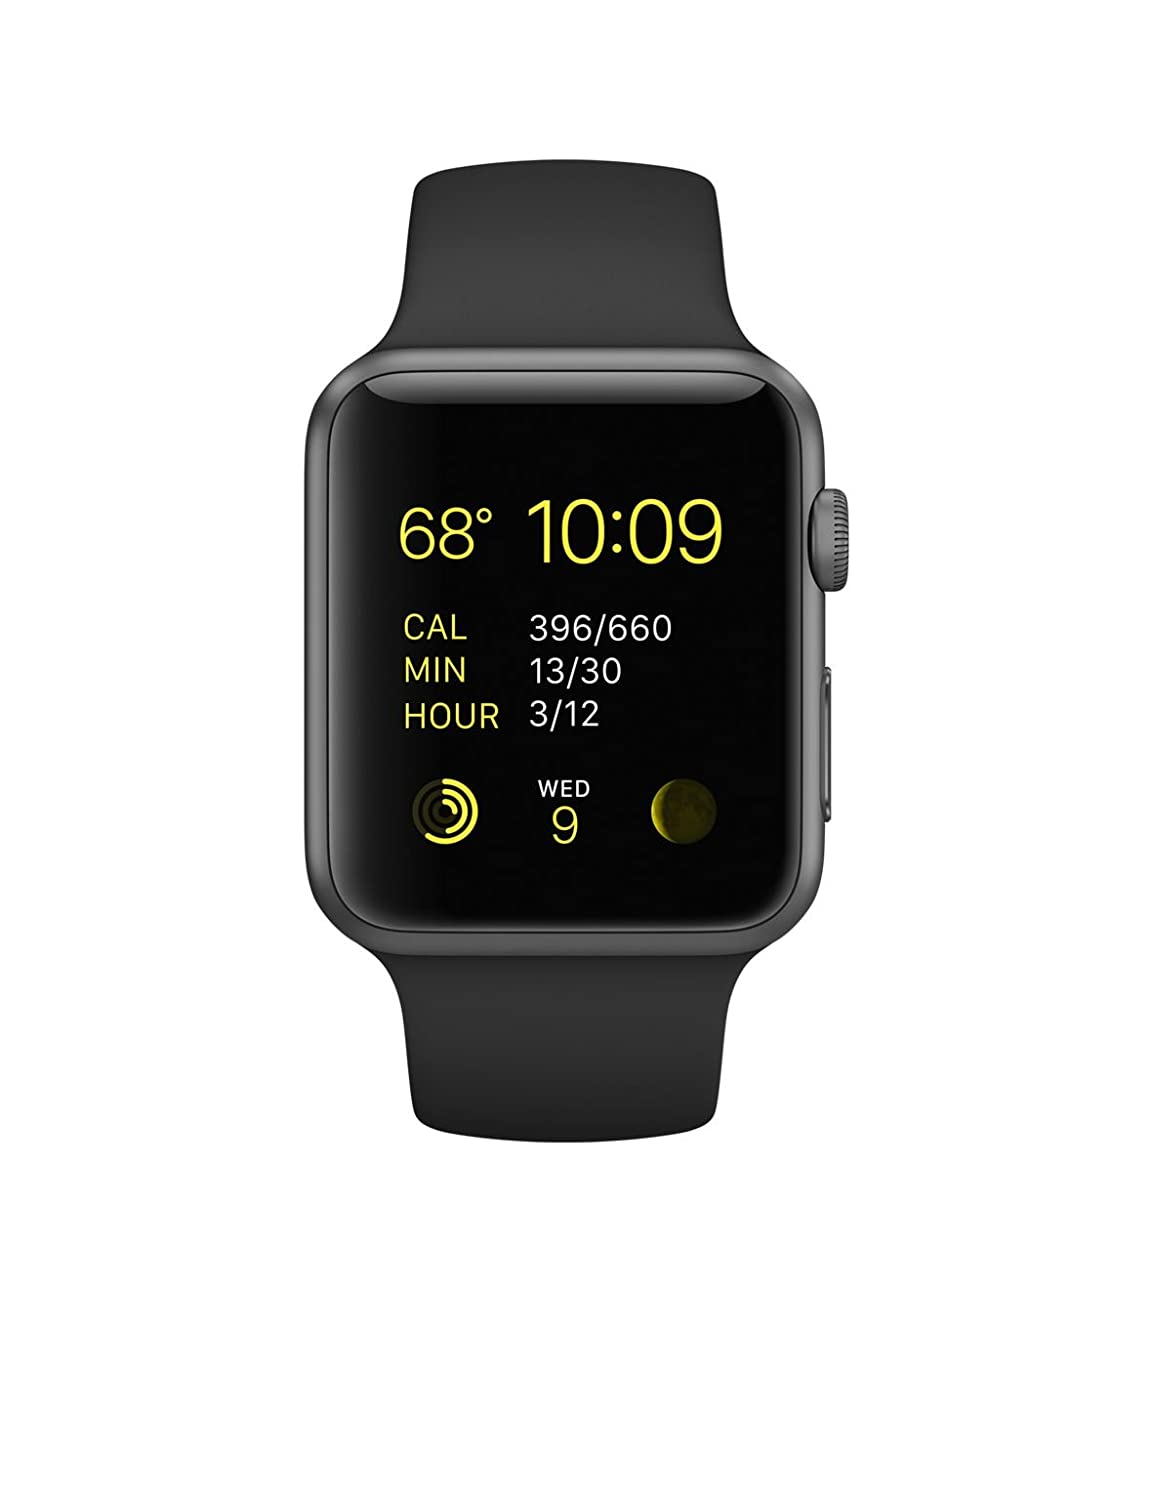 Wearable technology: Apple Watch, with 42mm screen, silver aluminum case, and sport band